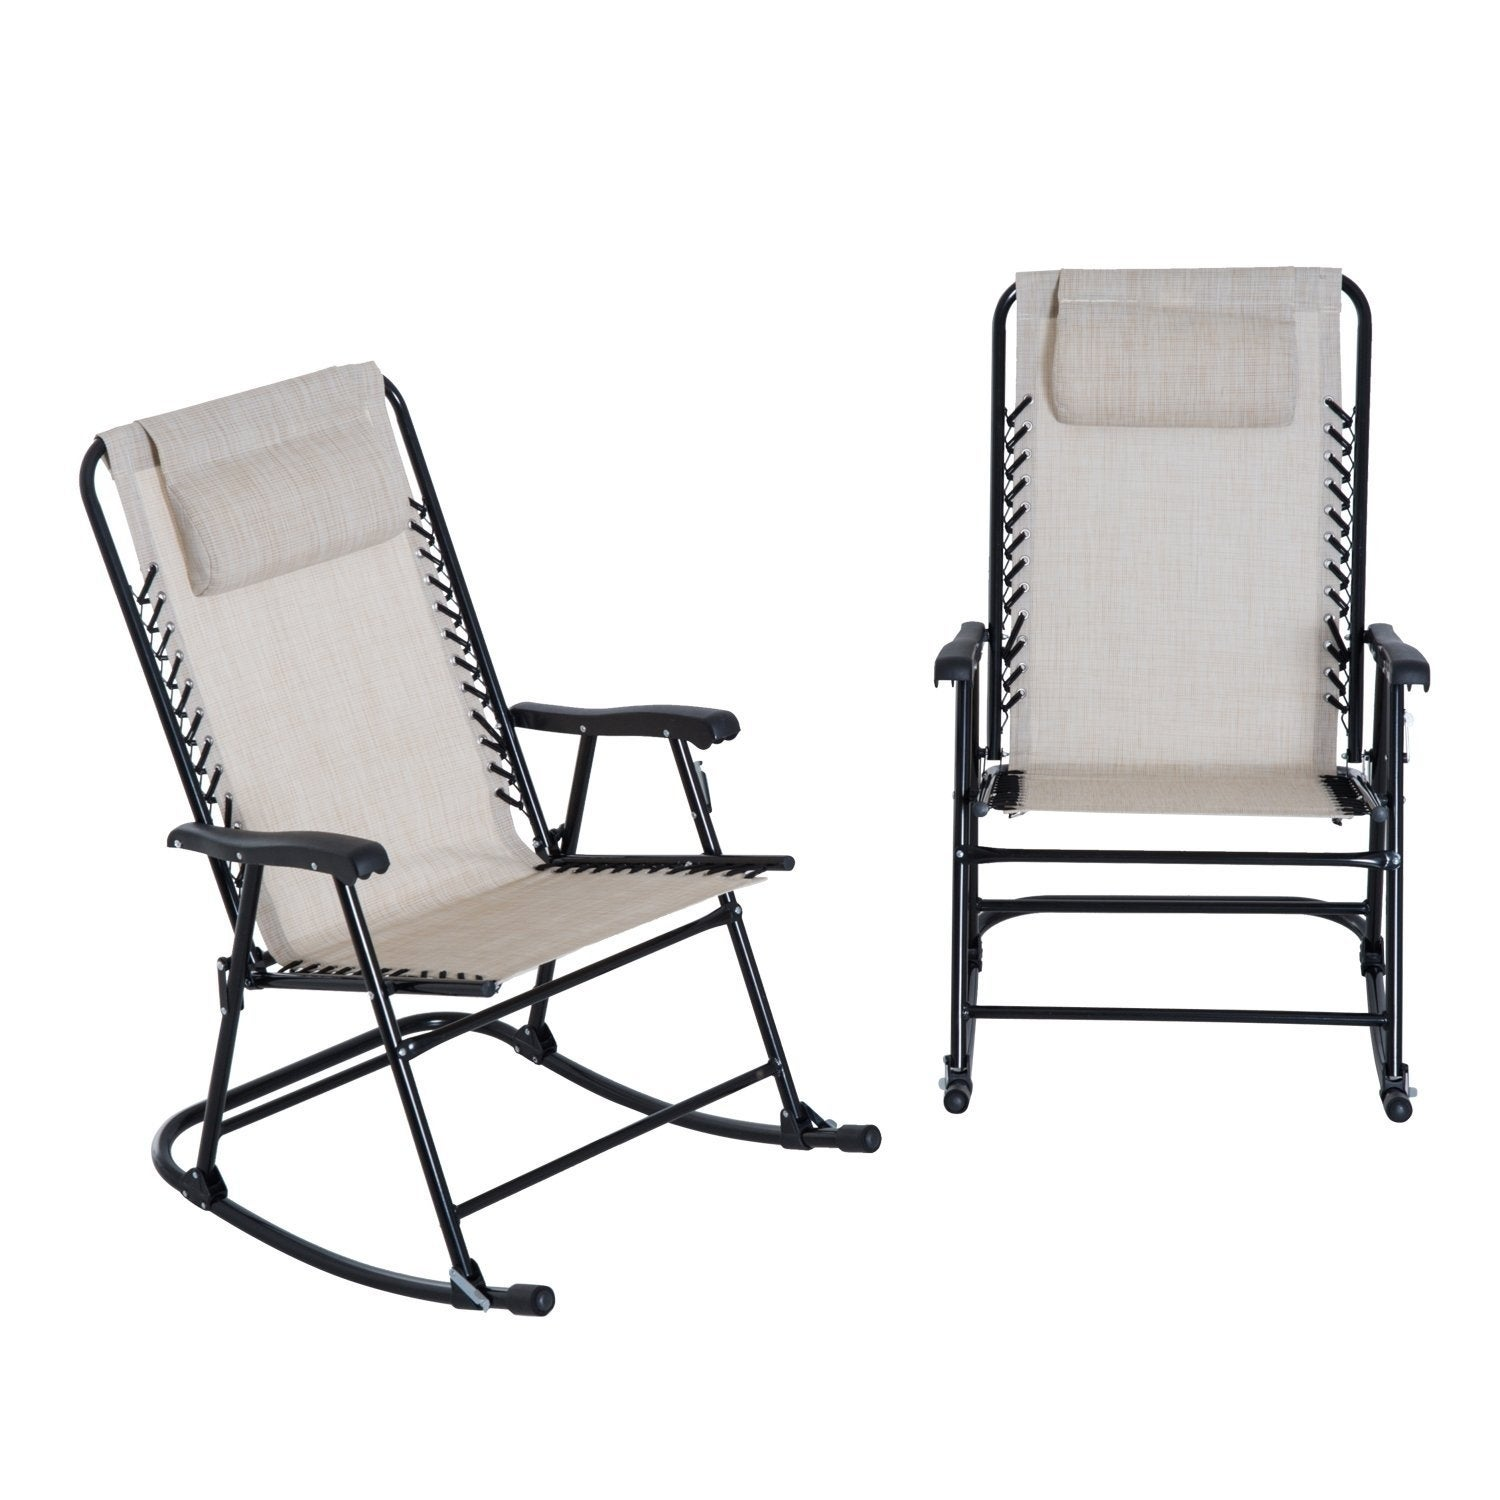 Outsunny Outdoor Rocking Chair Patio Table Seating Set Folding Cream White On Free Shipping Today 22263489